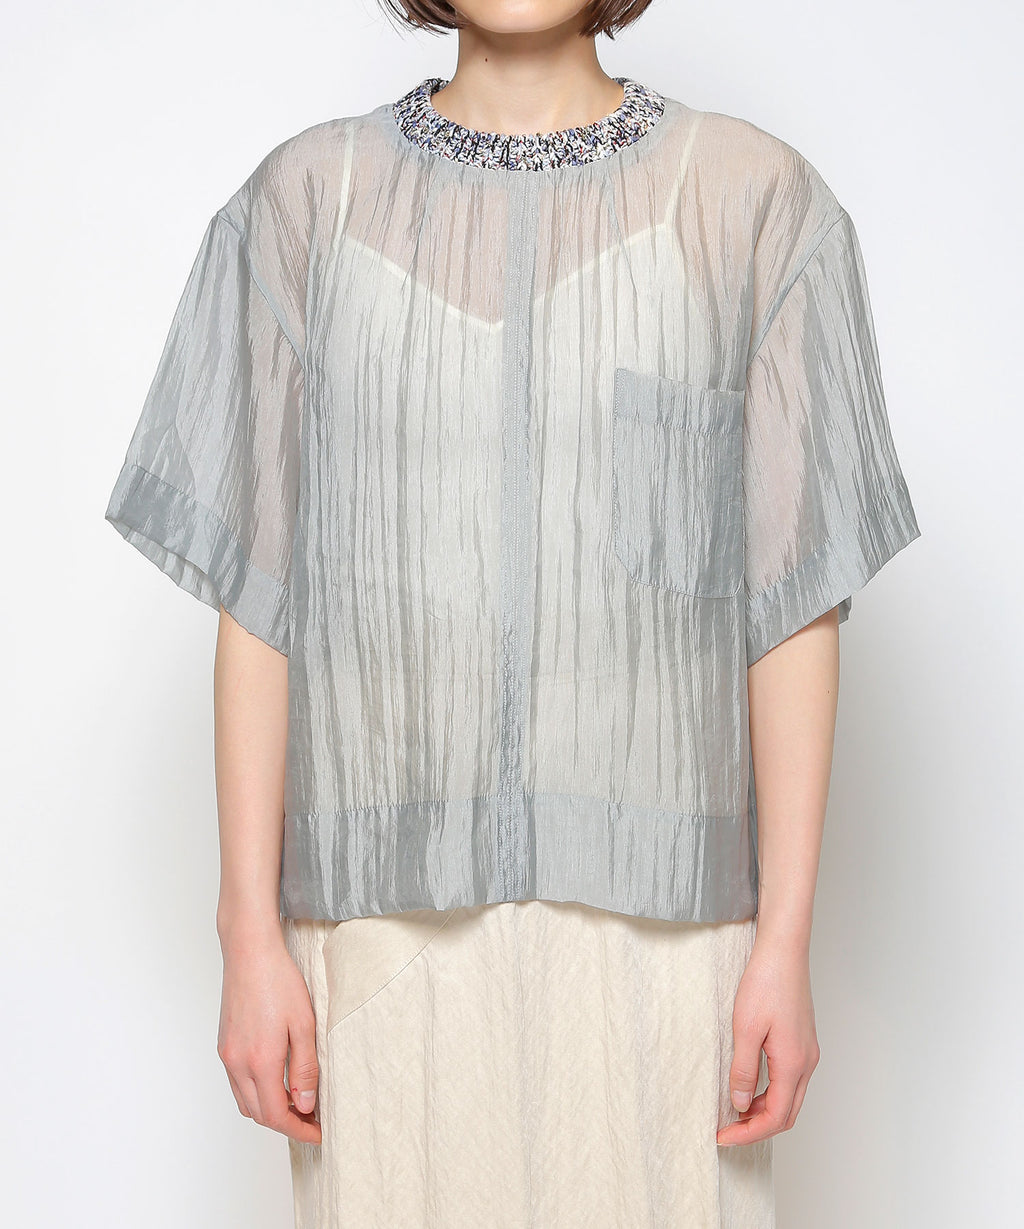 Knit rib organdy top